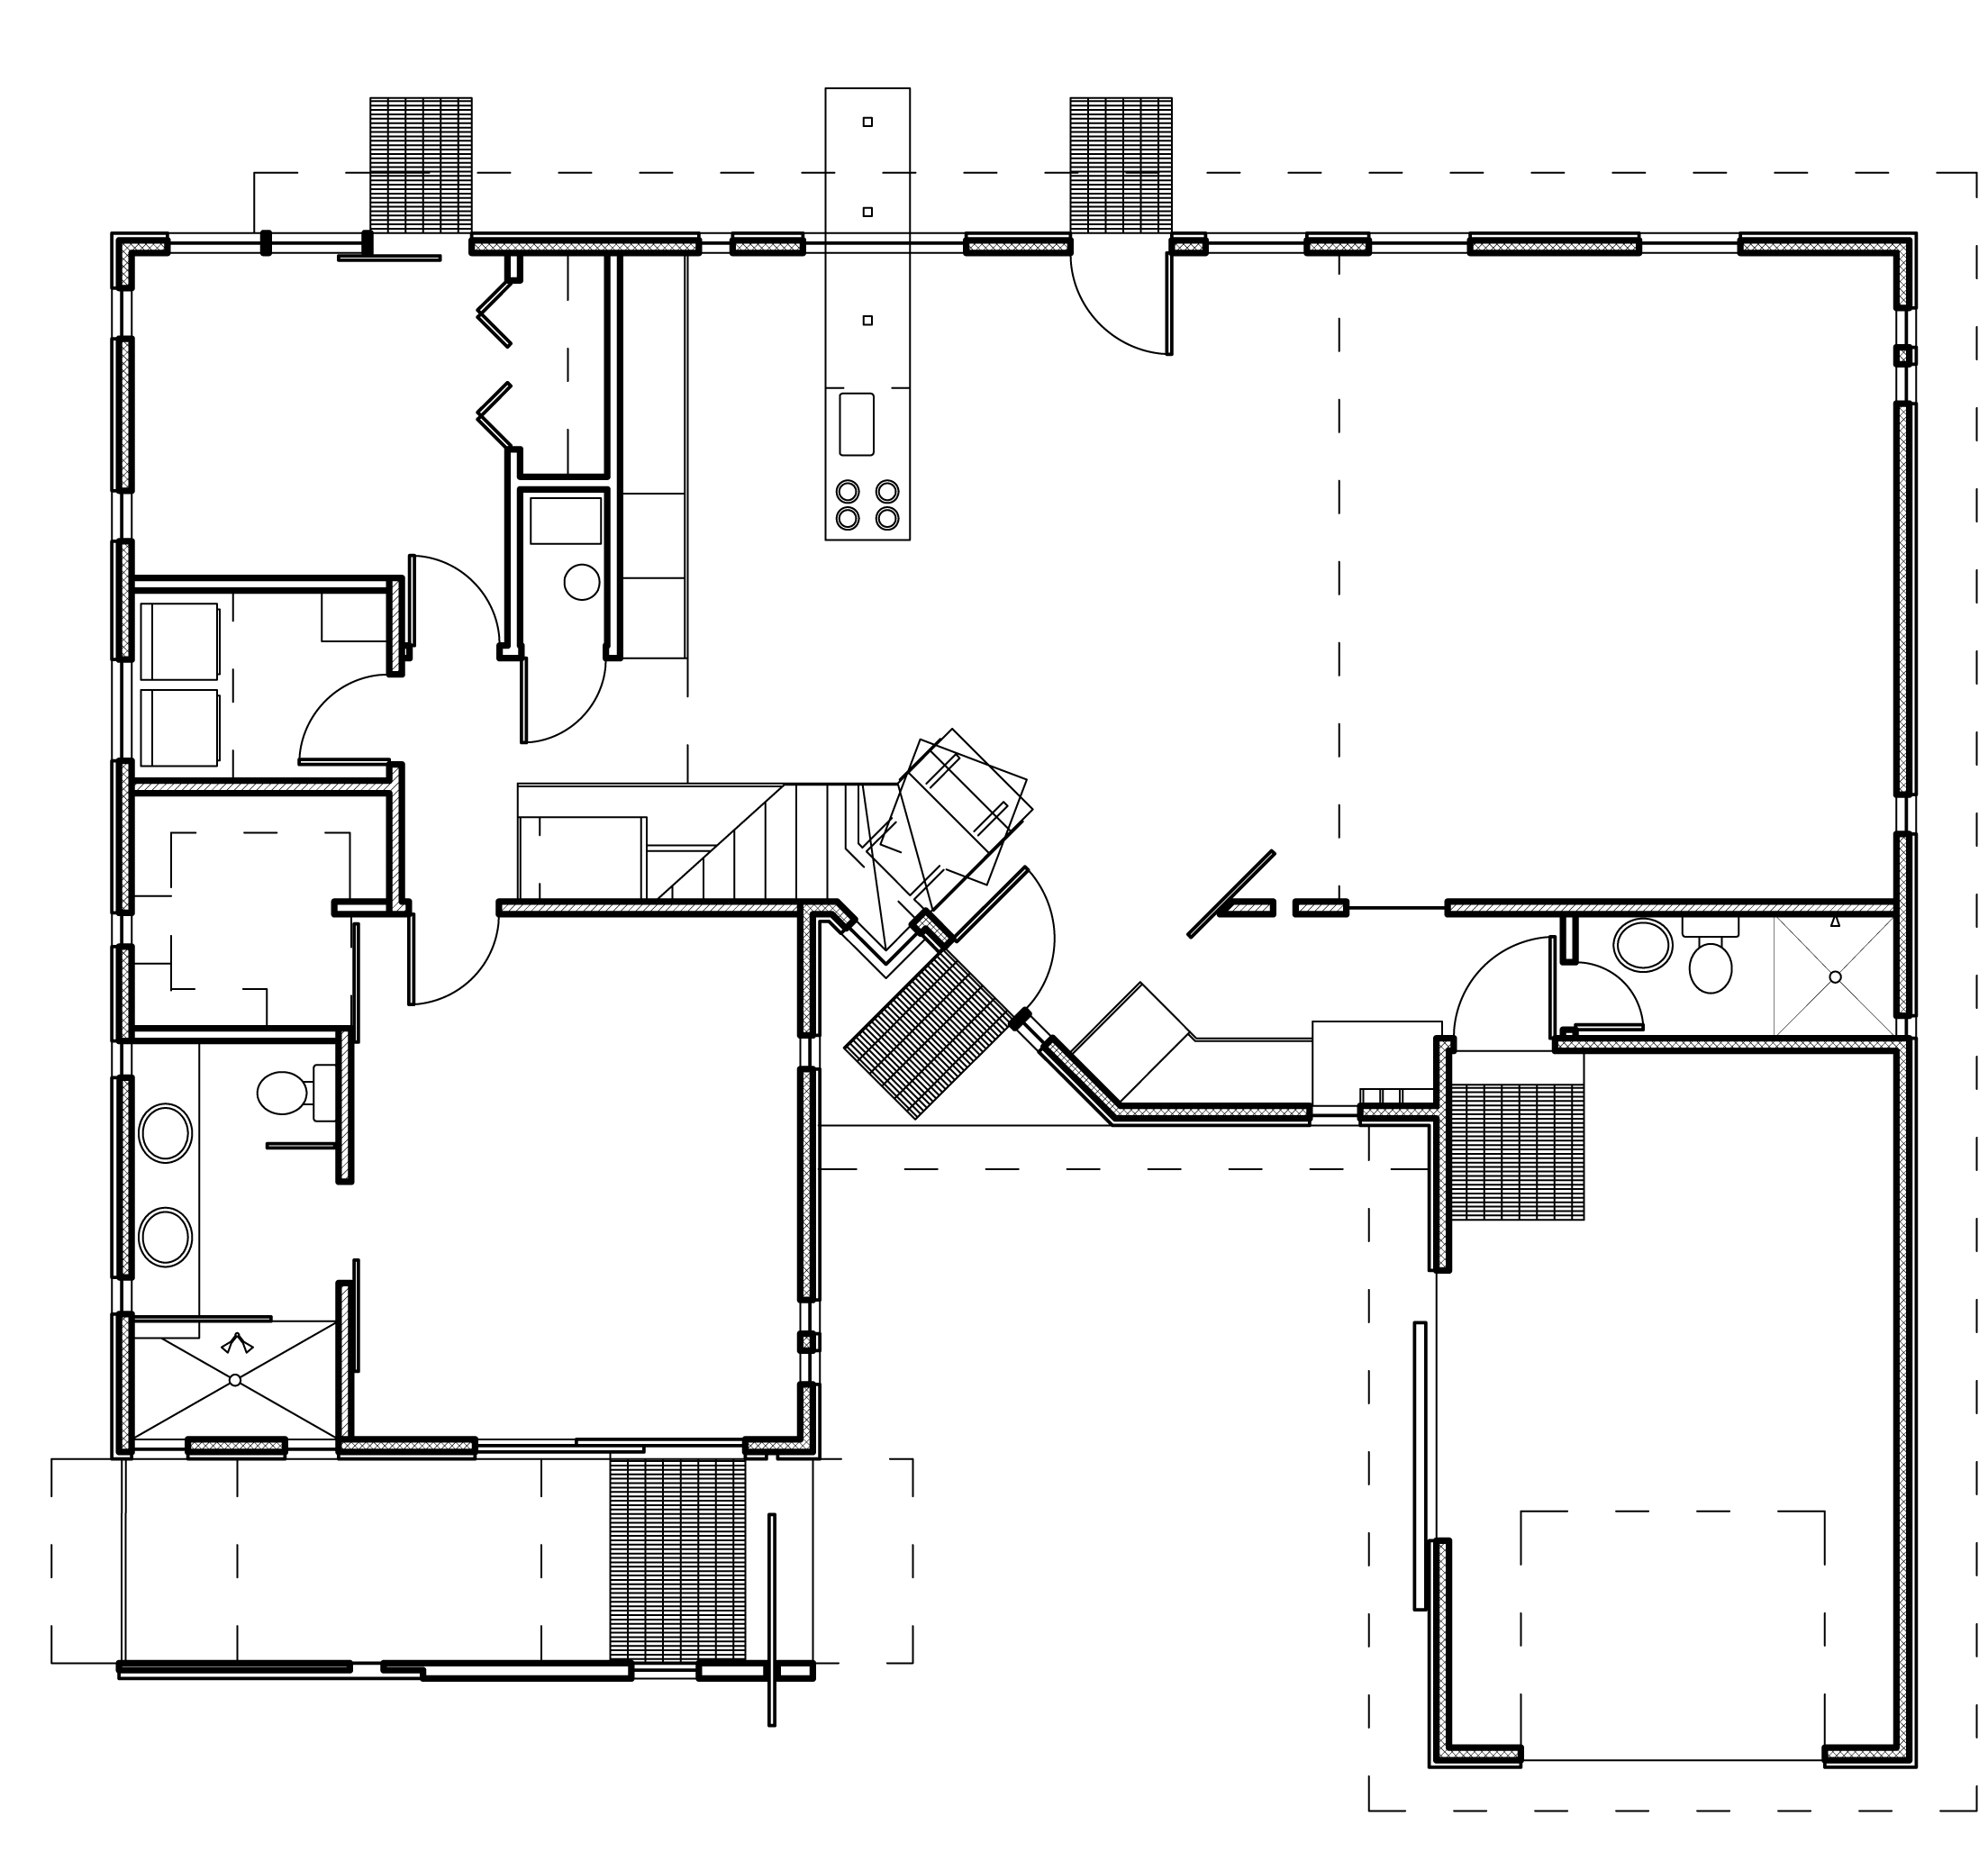 Modern house plans contemporary home designs floor plan 03 Modern home building plans